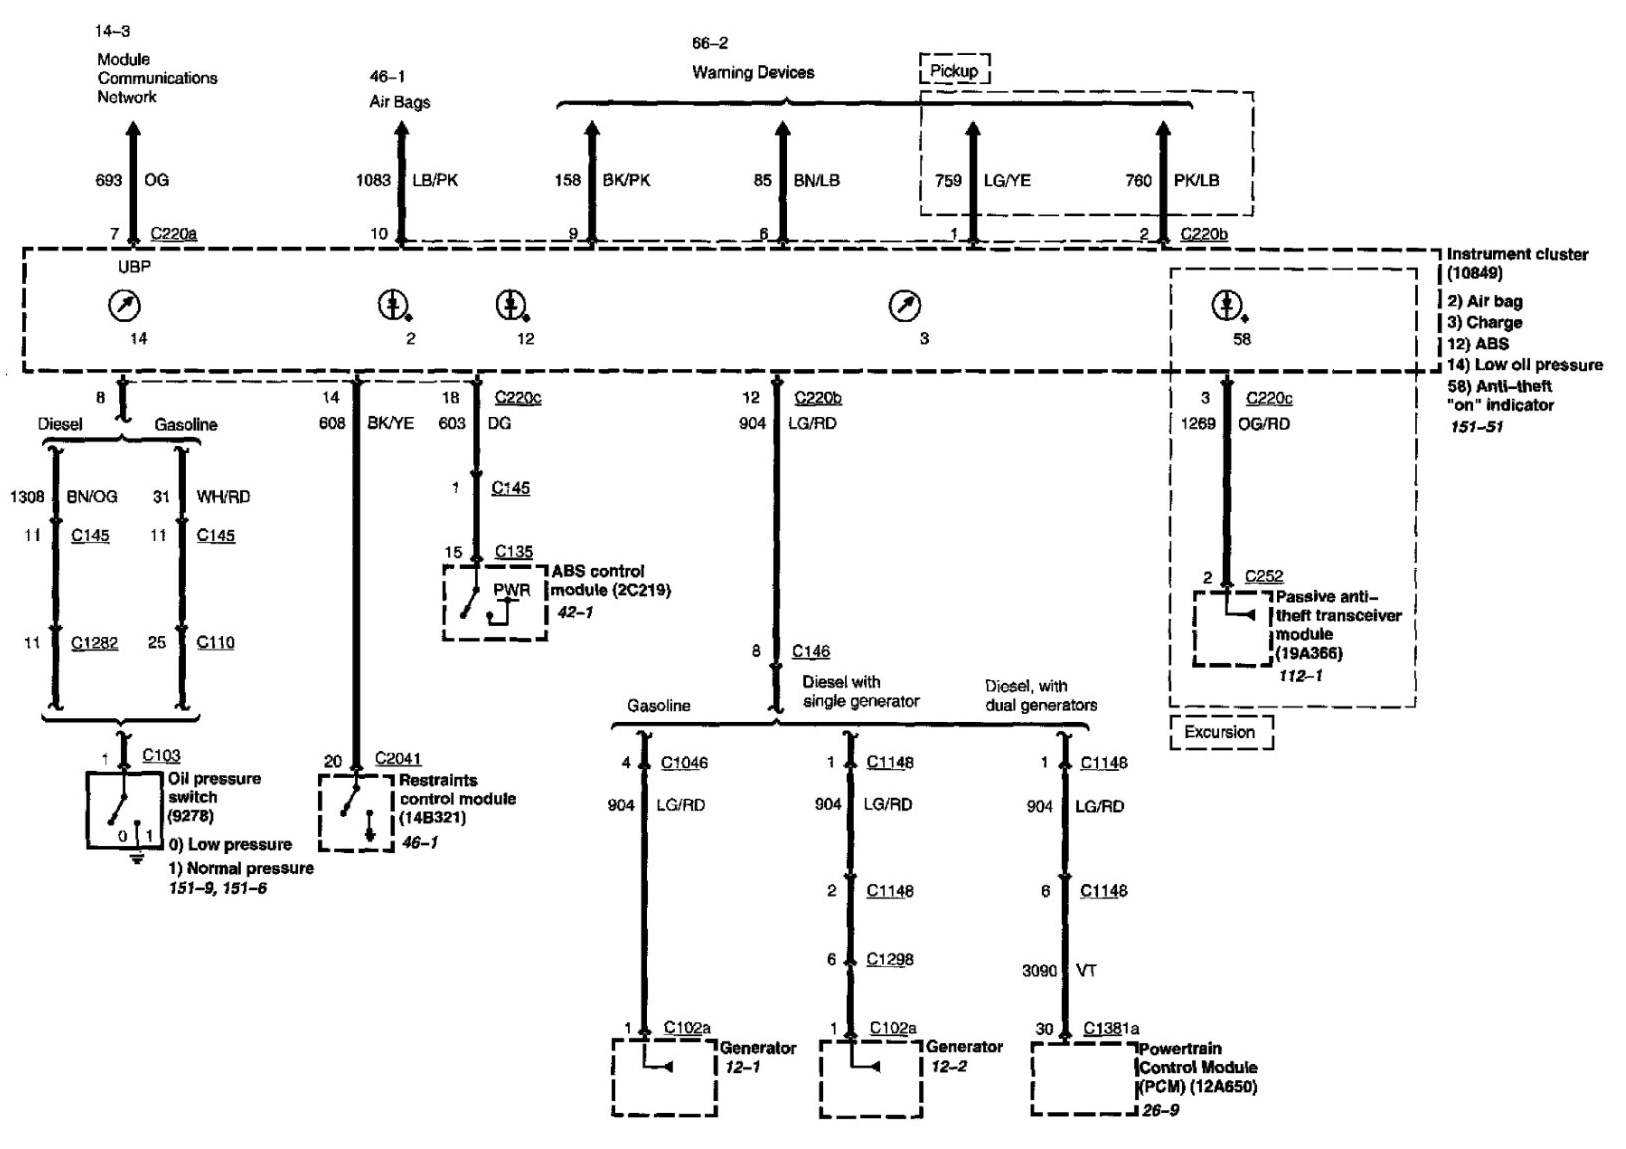 2004 F250 V10 Oil Pressure Gauge Registers No Mechanic Here Is A Wire Diagram Let Me Know If You Have Questions Thanks This Either Means Sender Wiring Or Cluster Has Failed Picture Of And